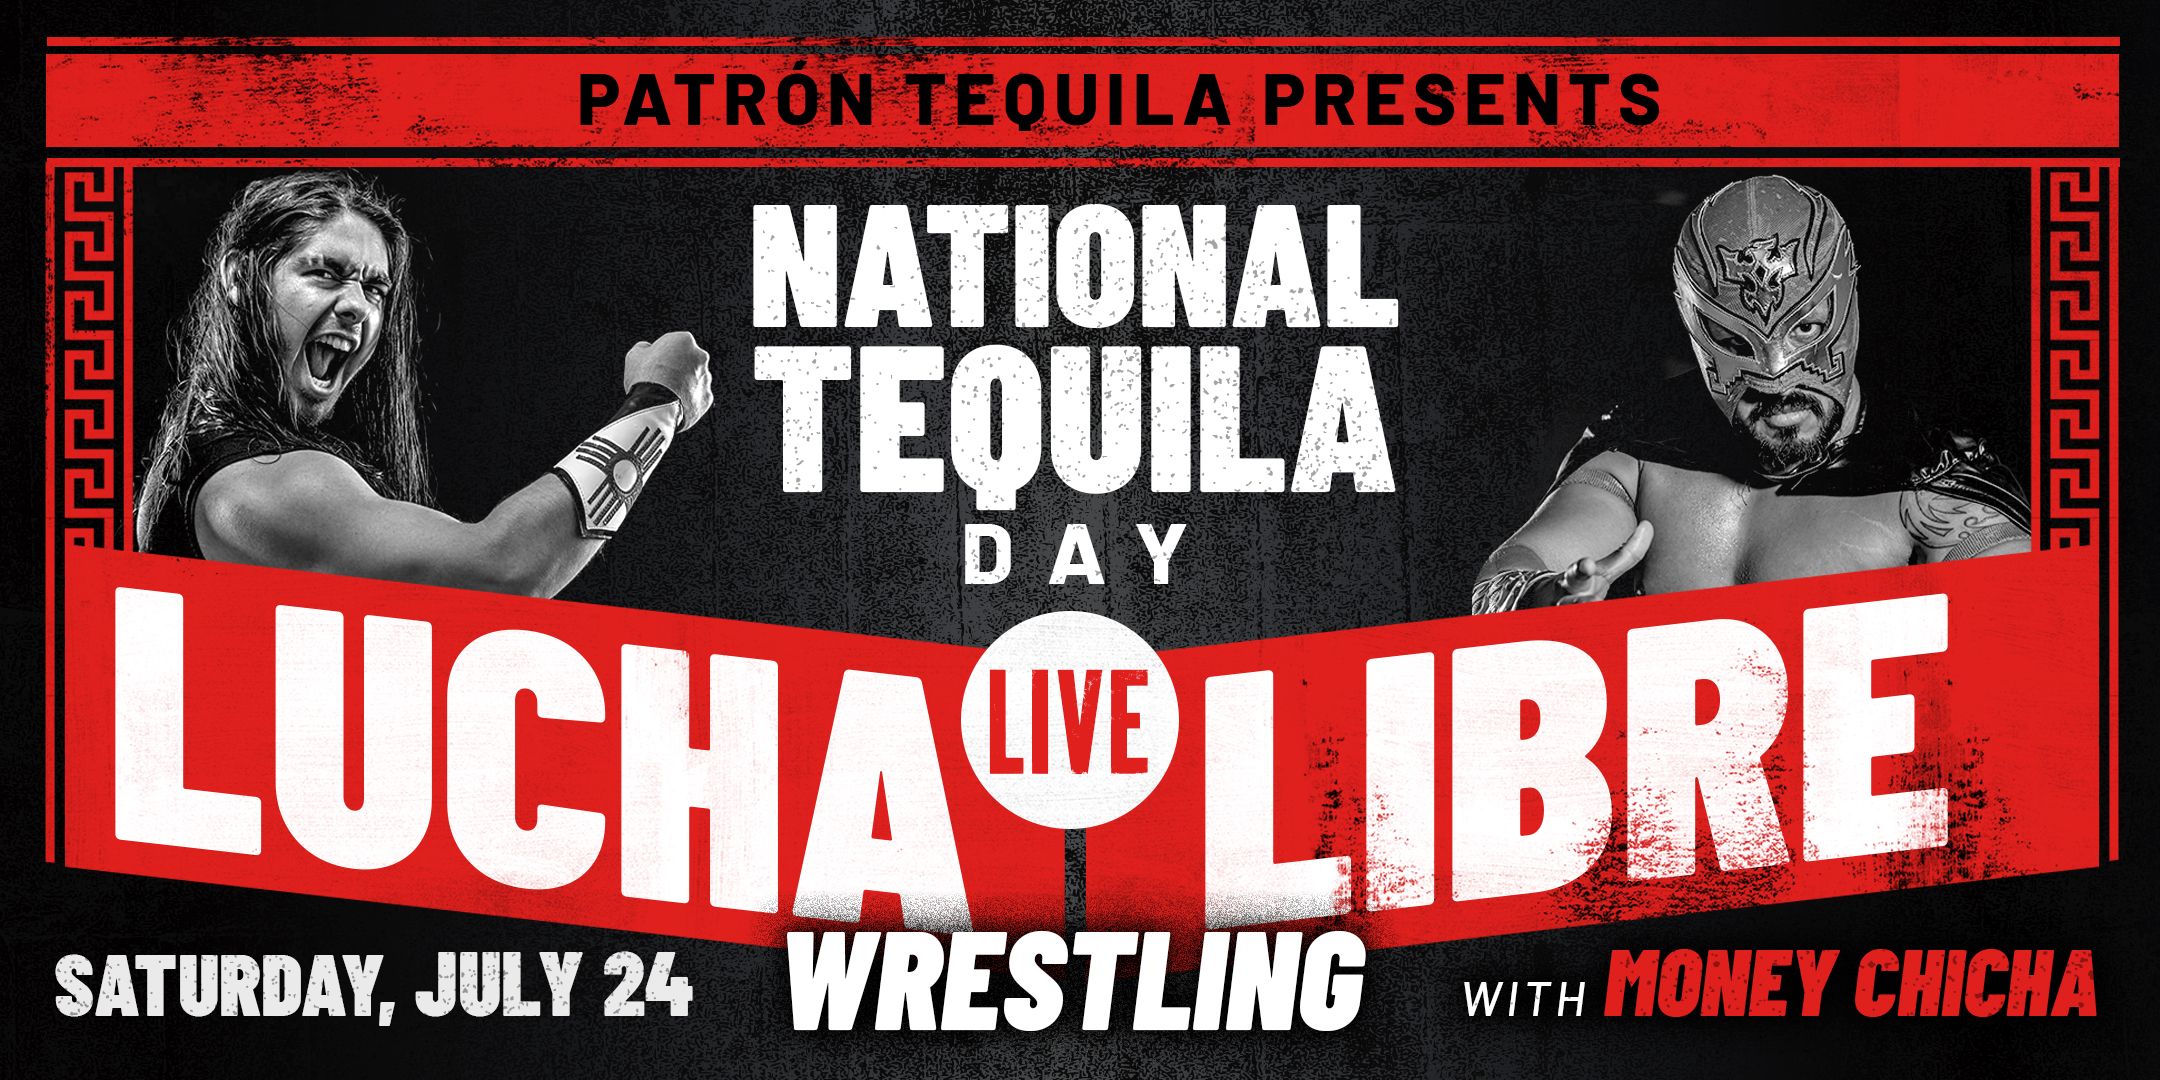 National Tequila Day - hero